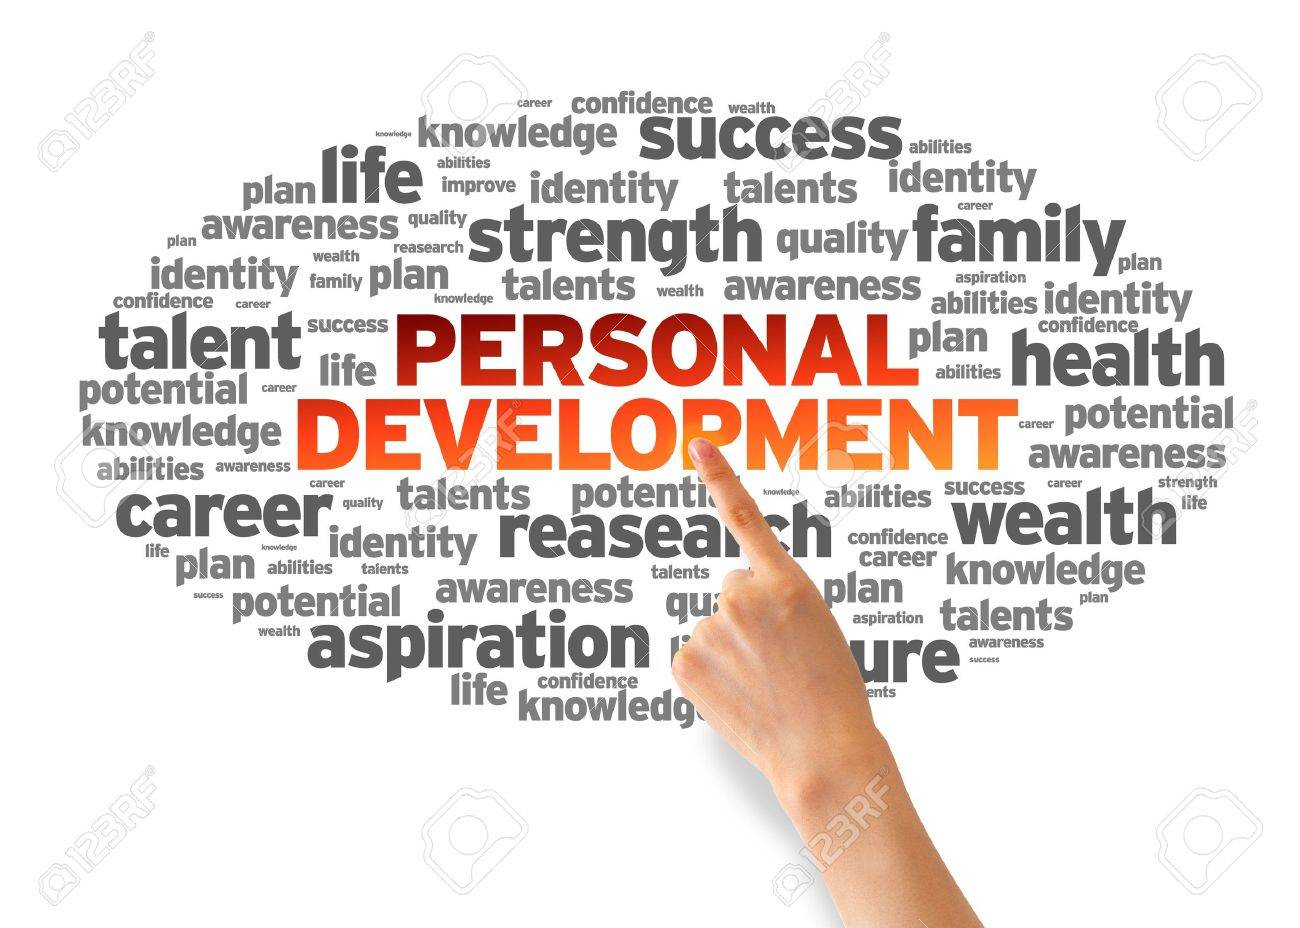 personal development images stock pictures royalty personal development hand pointing at a personal development word cloud on white background